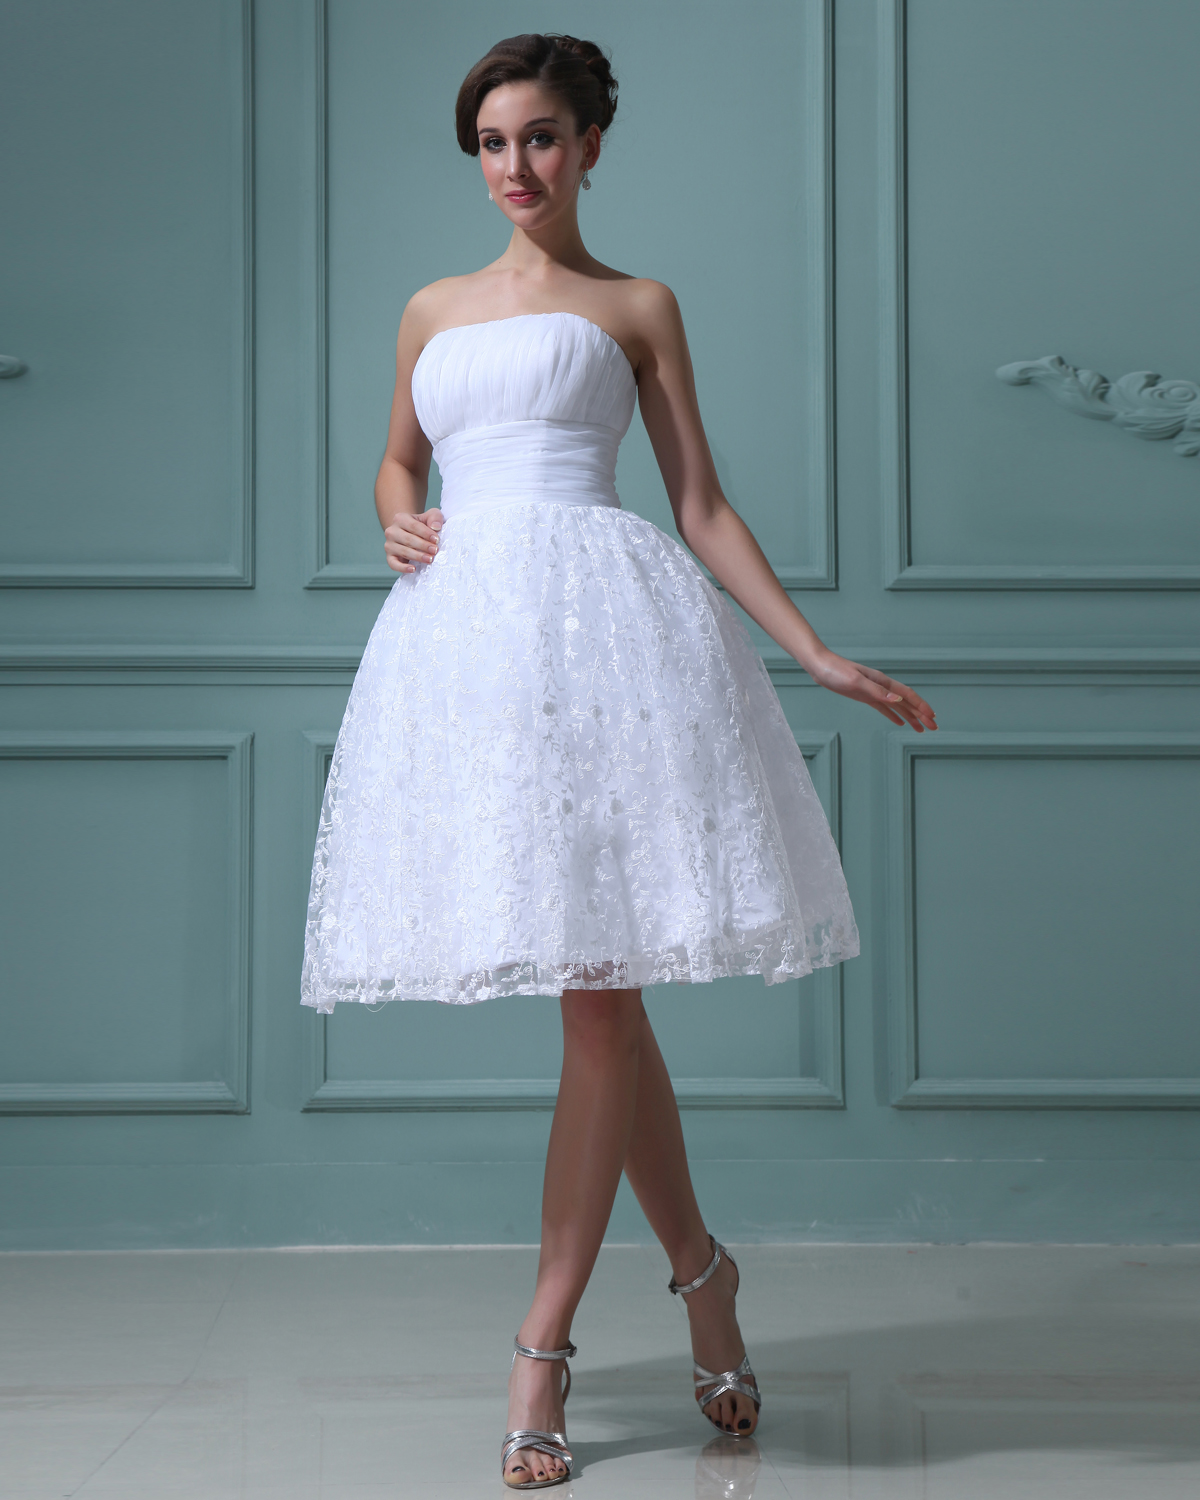 Lace Yarn Ruffles Strapless Short Mini Wedding Dresses